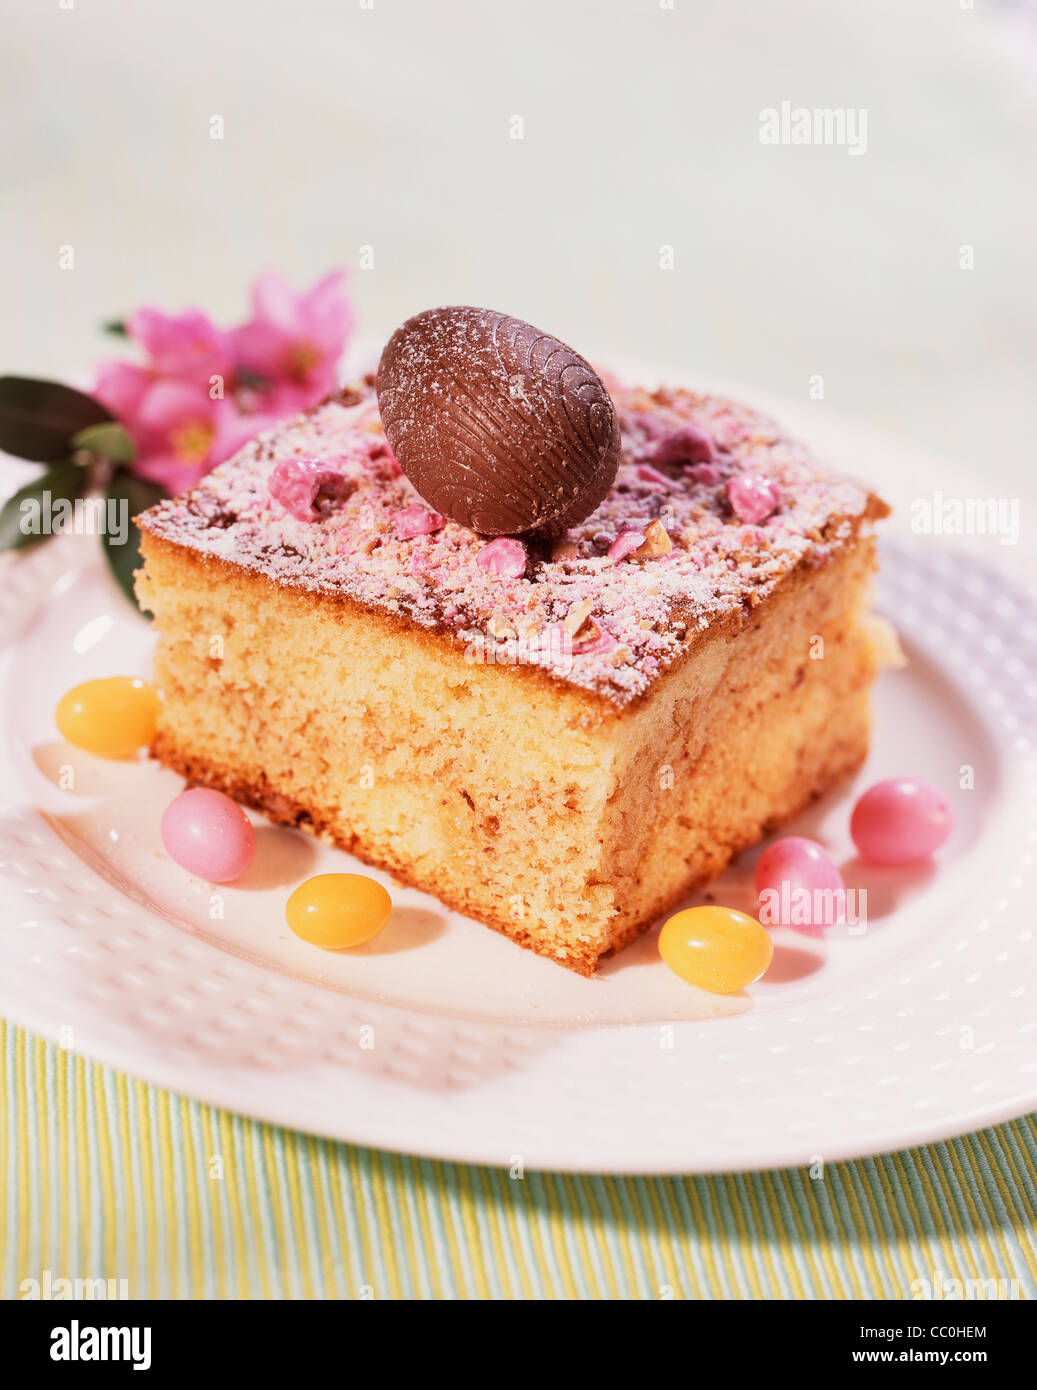 cooking Fluffy Cake with Pralines - Stock Image